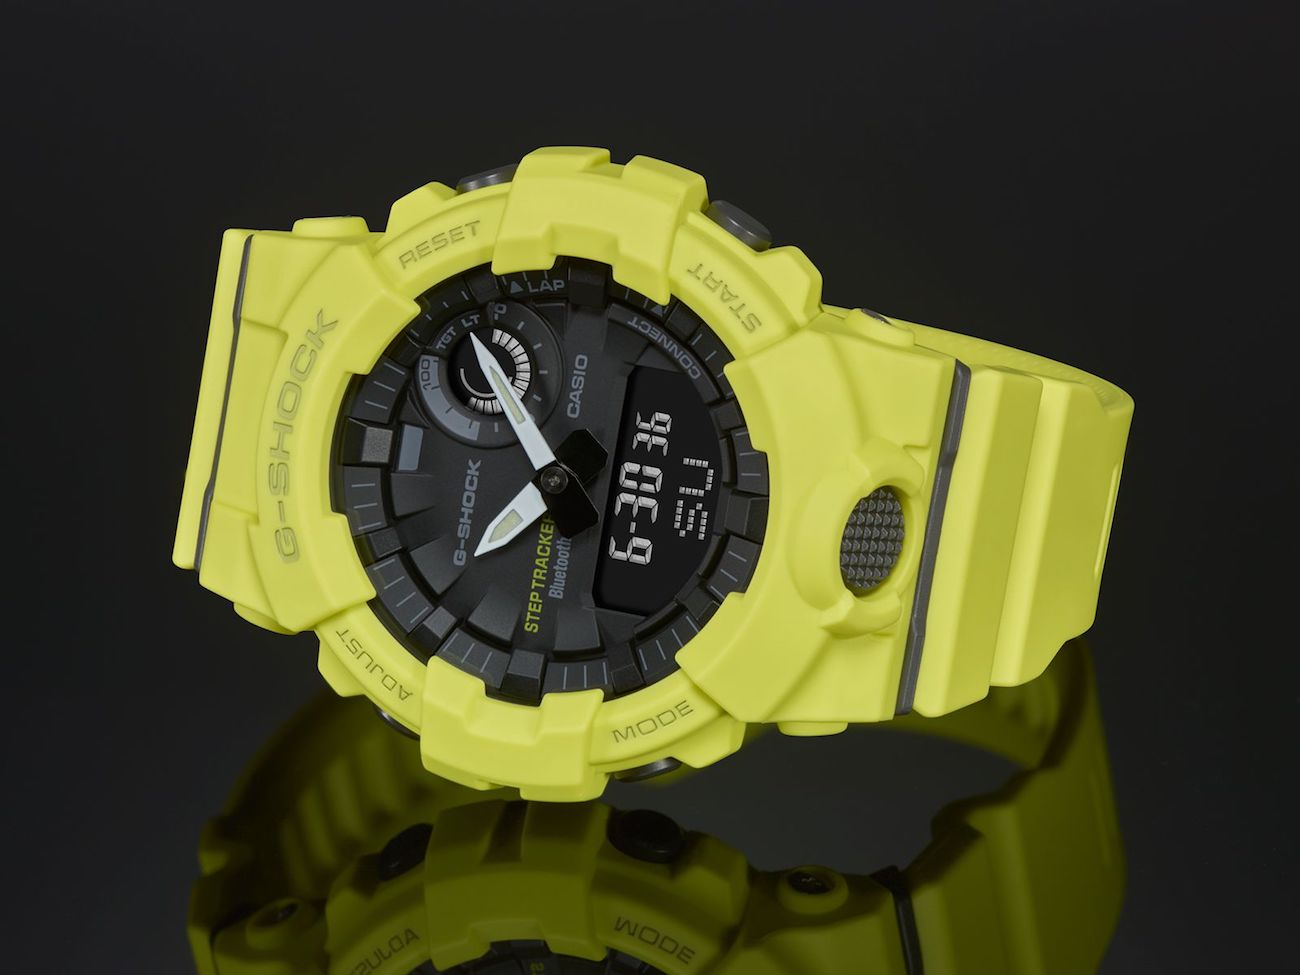 Casio GBA-800 Shock Resistant Watch